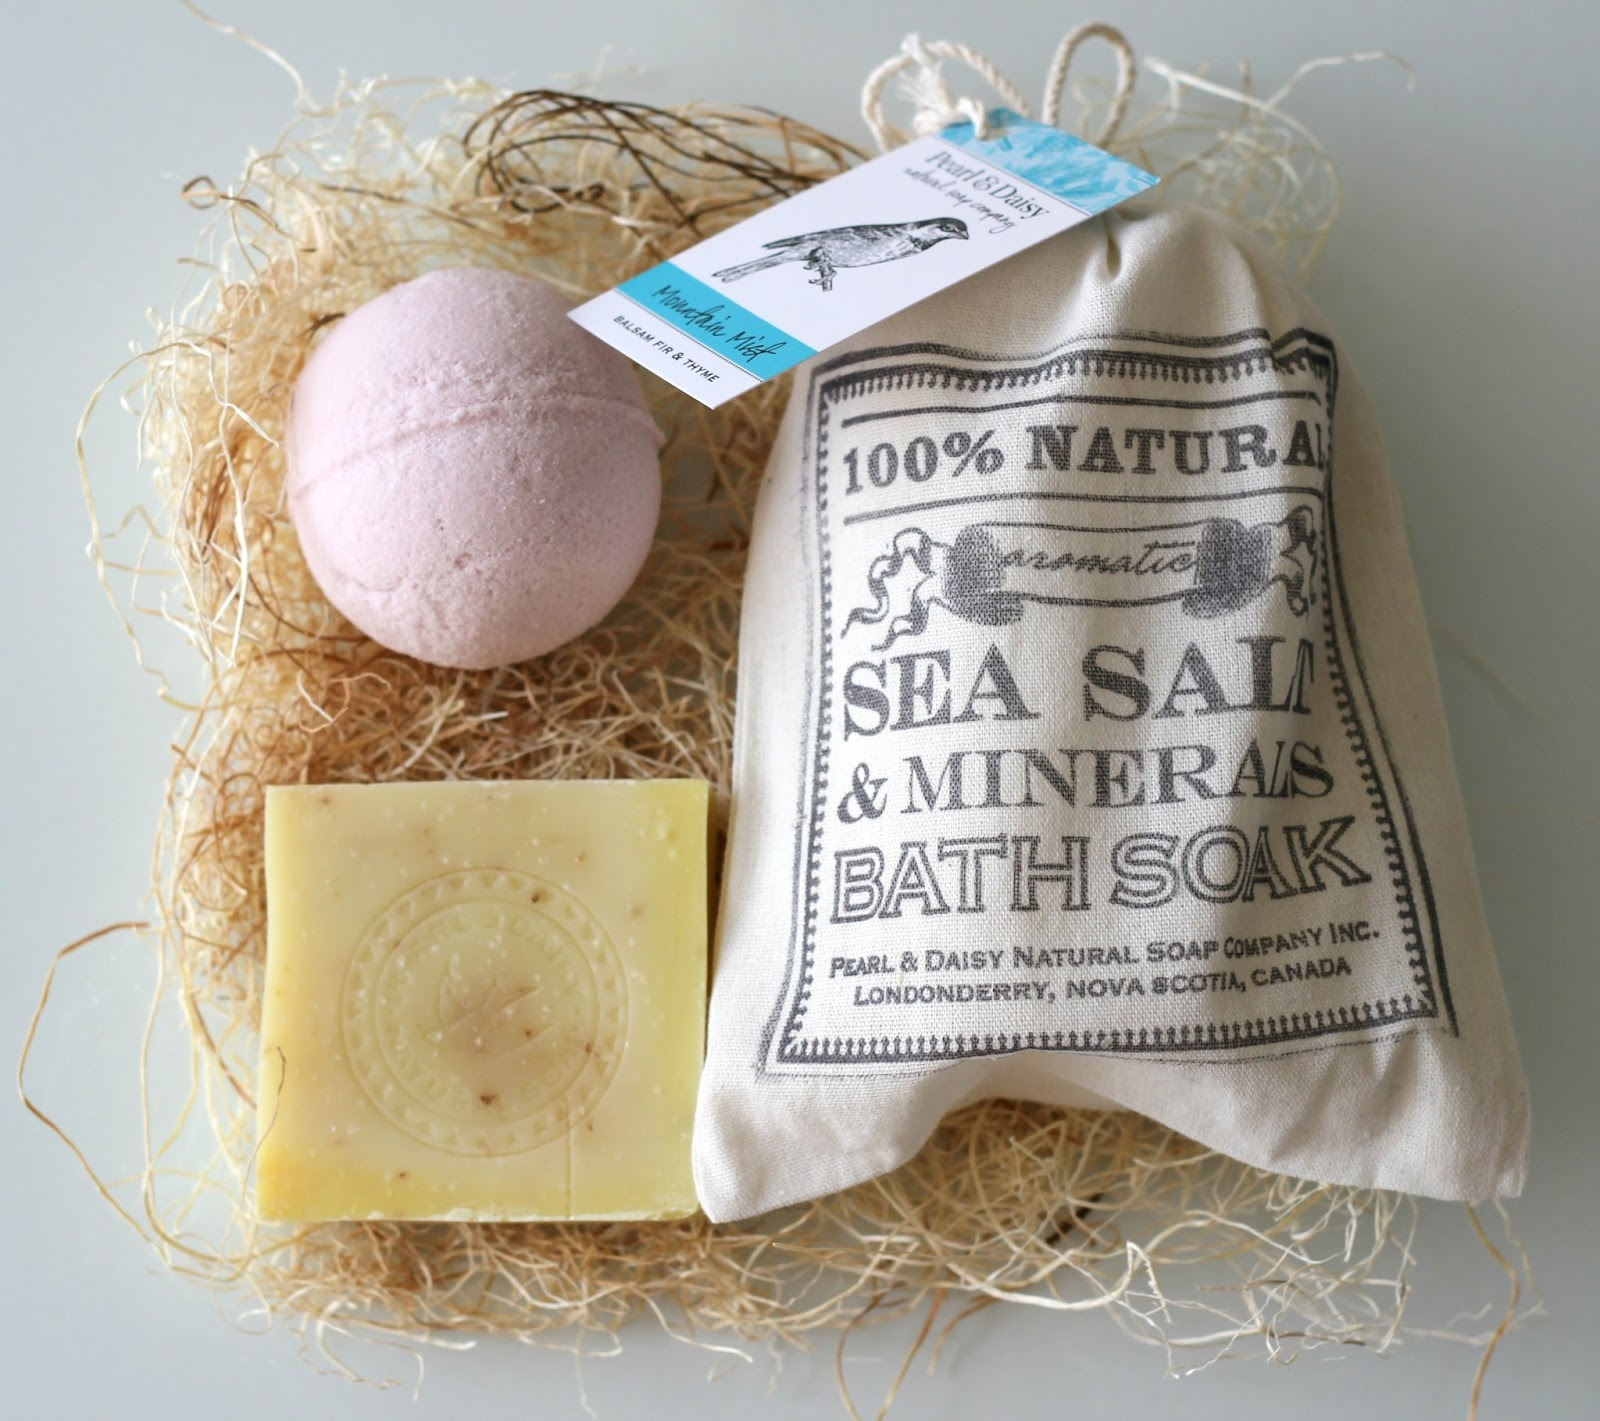 Take12 and Win with Pearl & Daisy Natural Soap Company